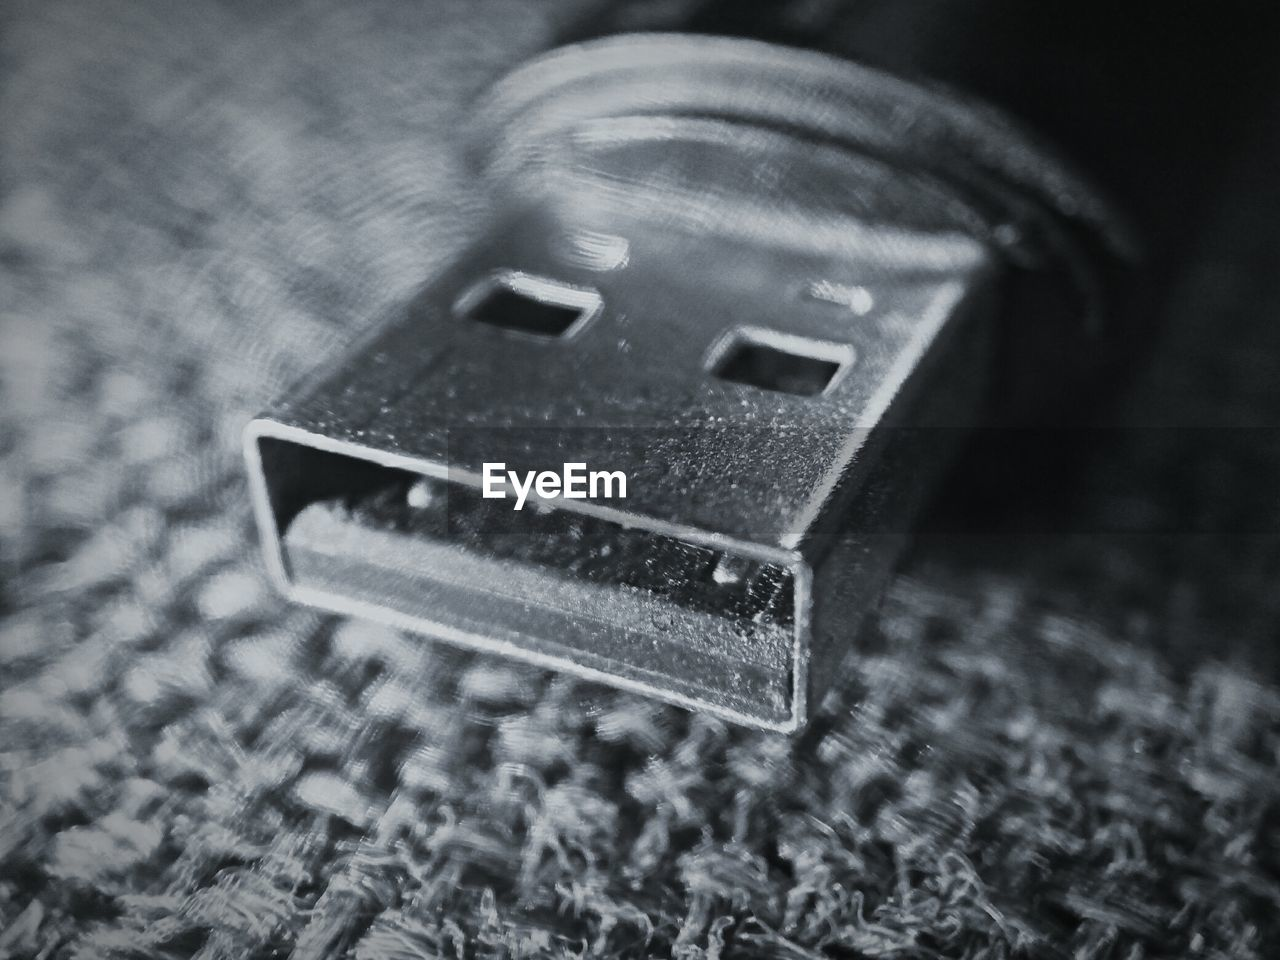 no people, close-up, selective focus, single object, indoors, computer chip, day